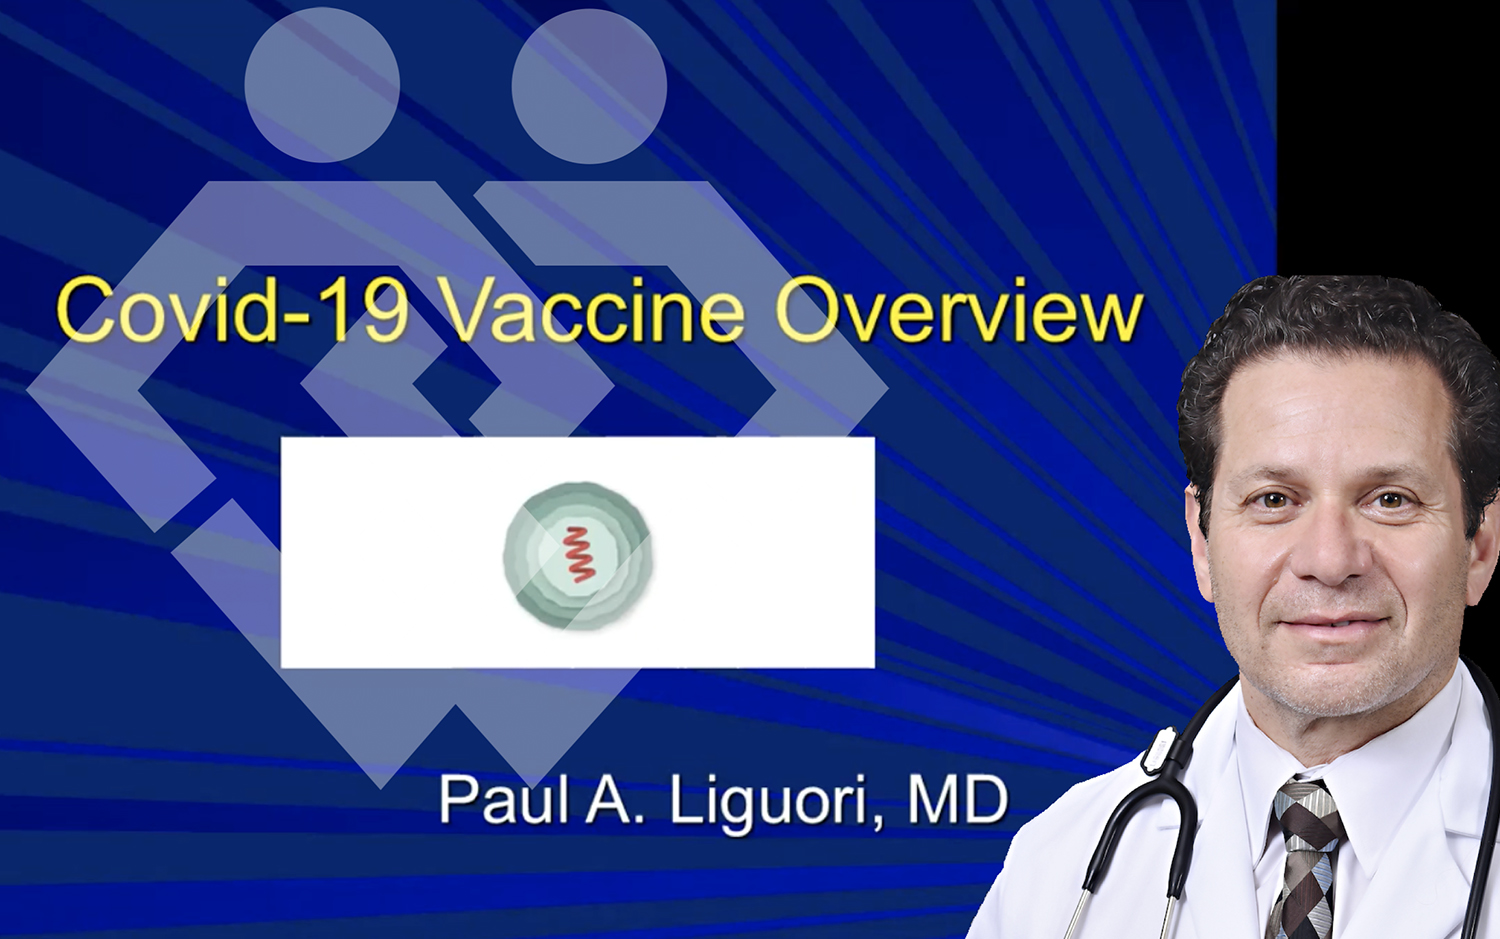 The Covid-19 vaccine is coming to Whittier Health Network in Massachusetts: Everything You Need To Know About The mRNA COVID-19 Vaccine – Dr Paul Liguori